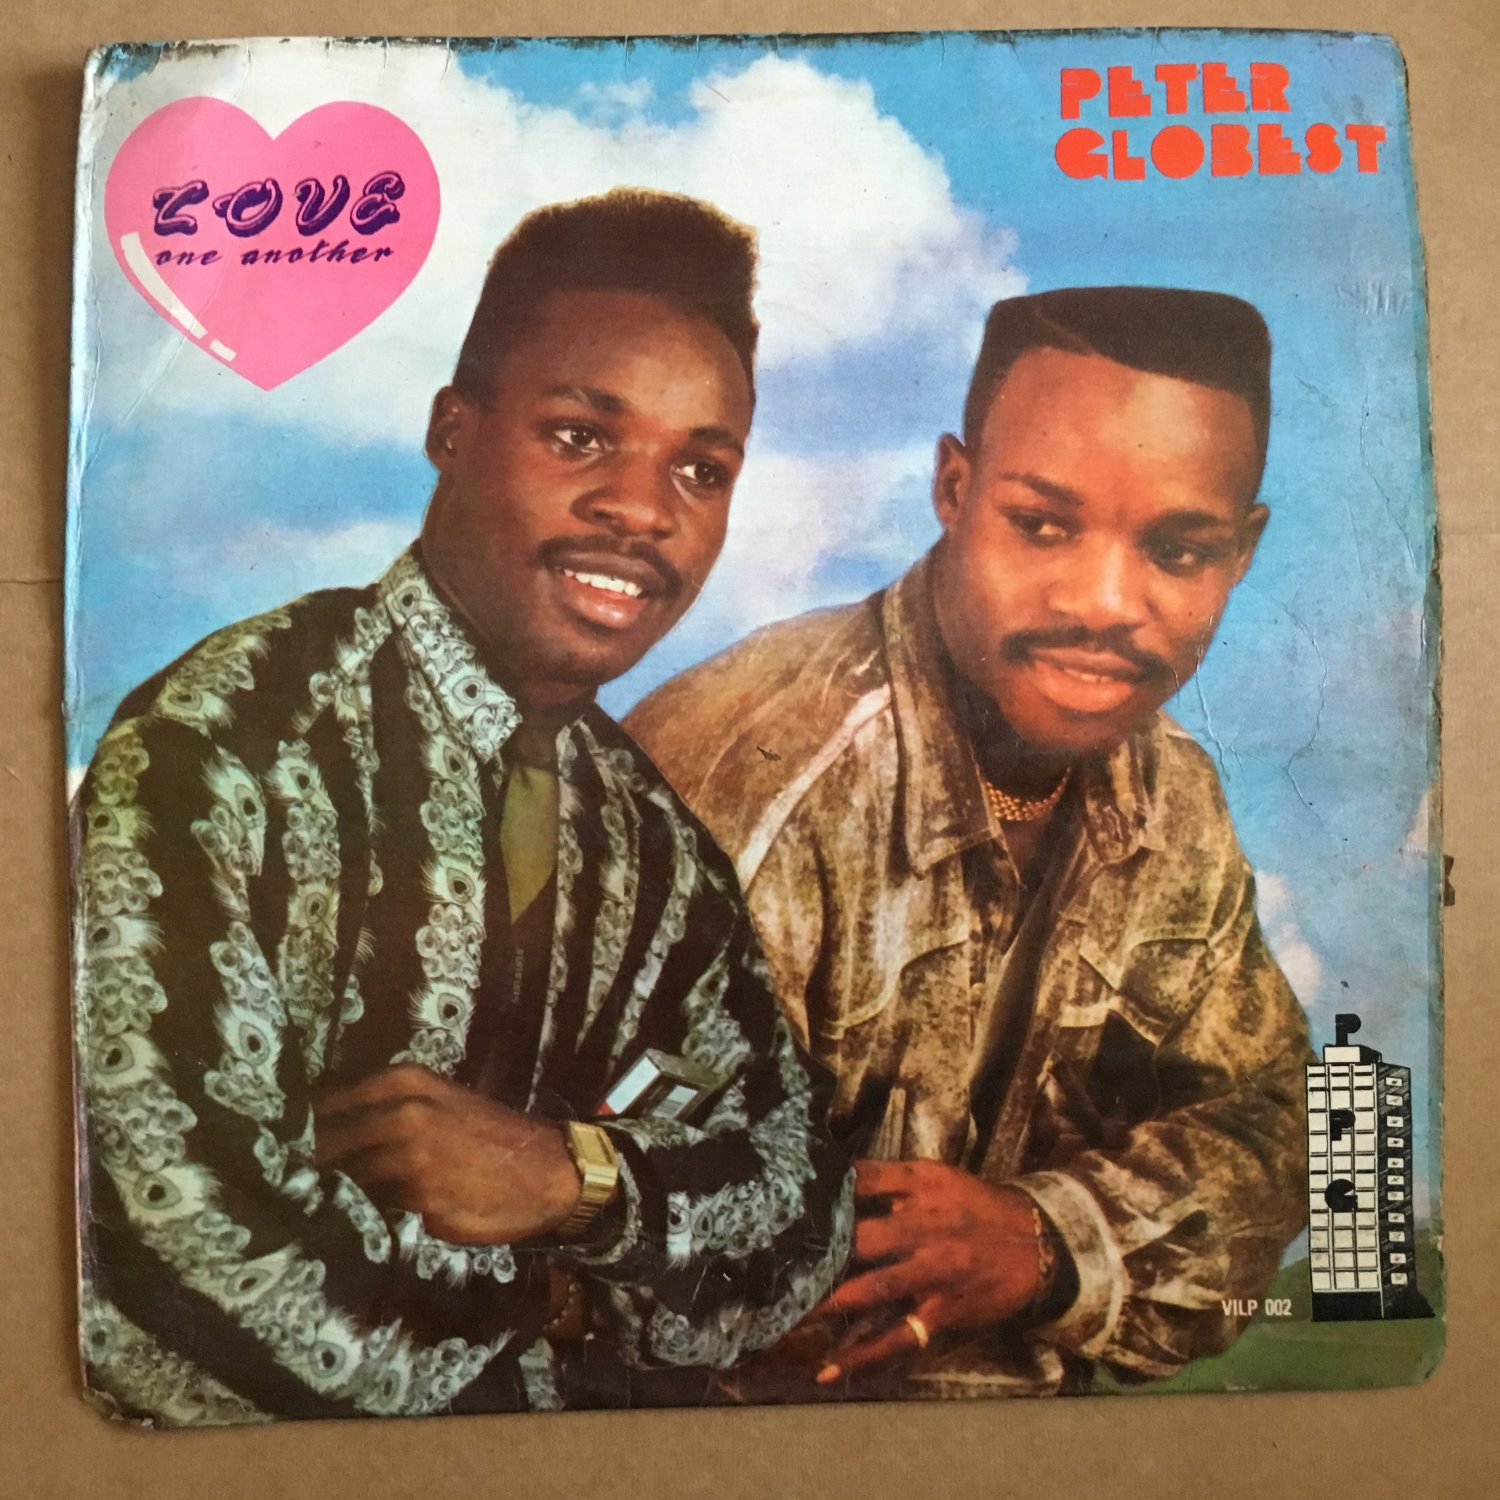 PETER GLOBEST LP love one another NIGERIA OBSCURE DANCEHALL RAGGA EARLY HIP HOP mp3 LISTEN